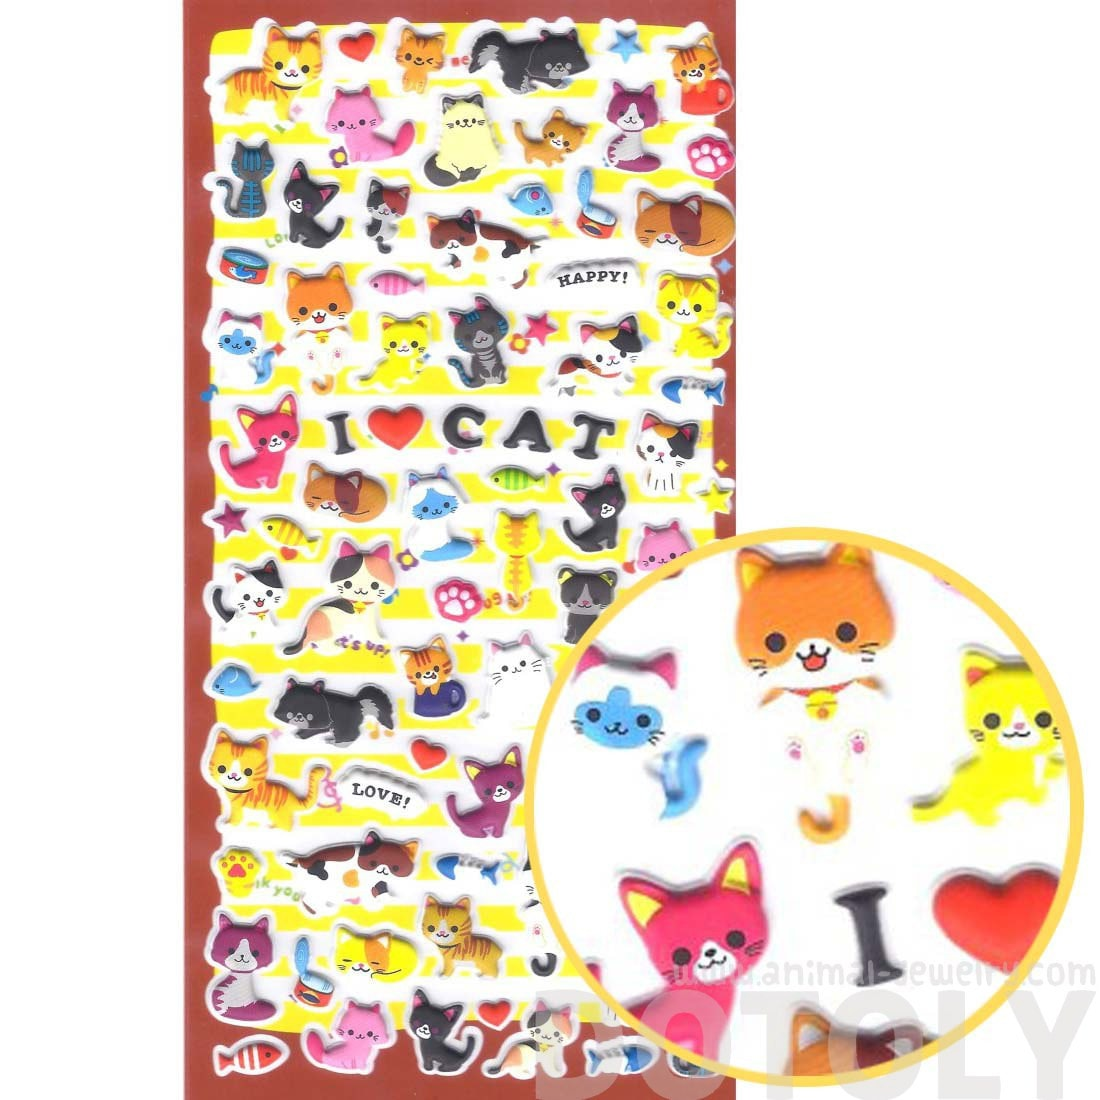 Kawaii Kitty Cat Shaped Japanese Animal Themed Puffy Sticker Seals